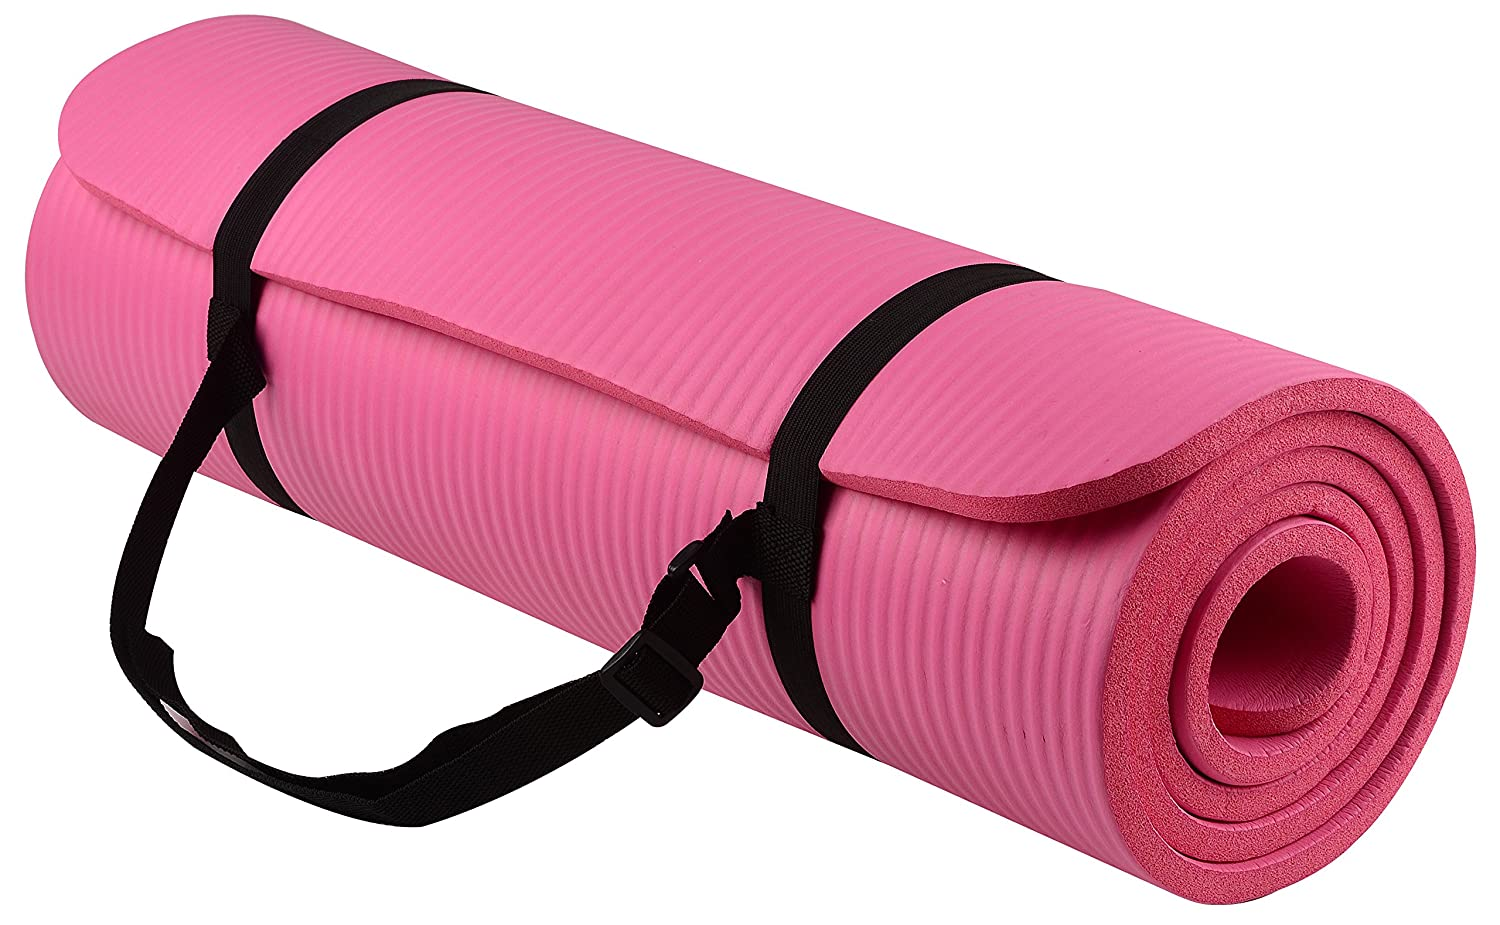 Fitbabe GoYoga All-Purpose 1/2-Inch Extra Thick High Density Anti-Tear Exercise Yoga Mat with Carrying Strap